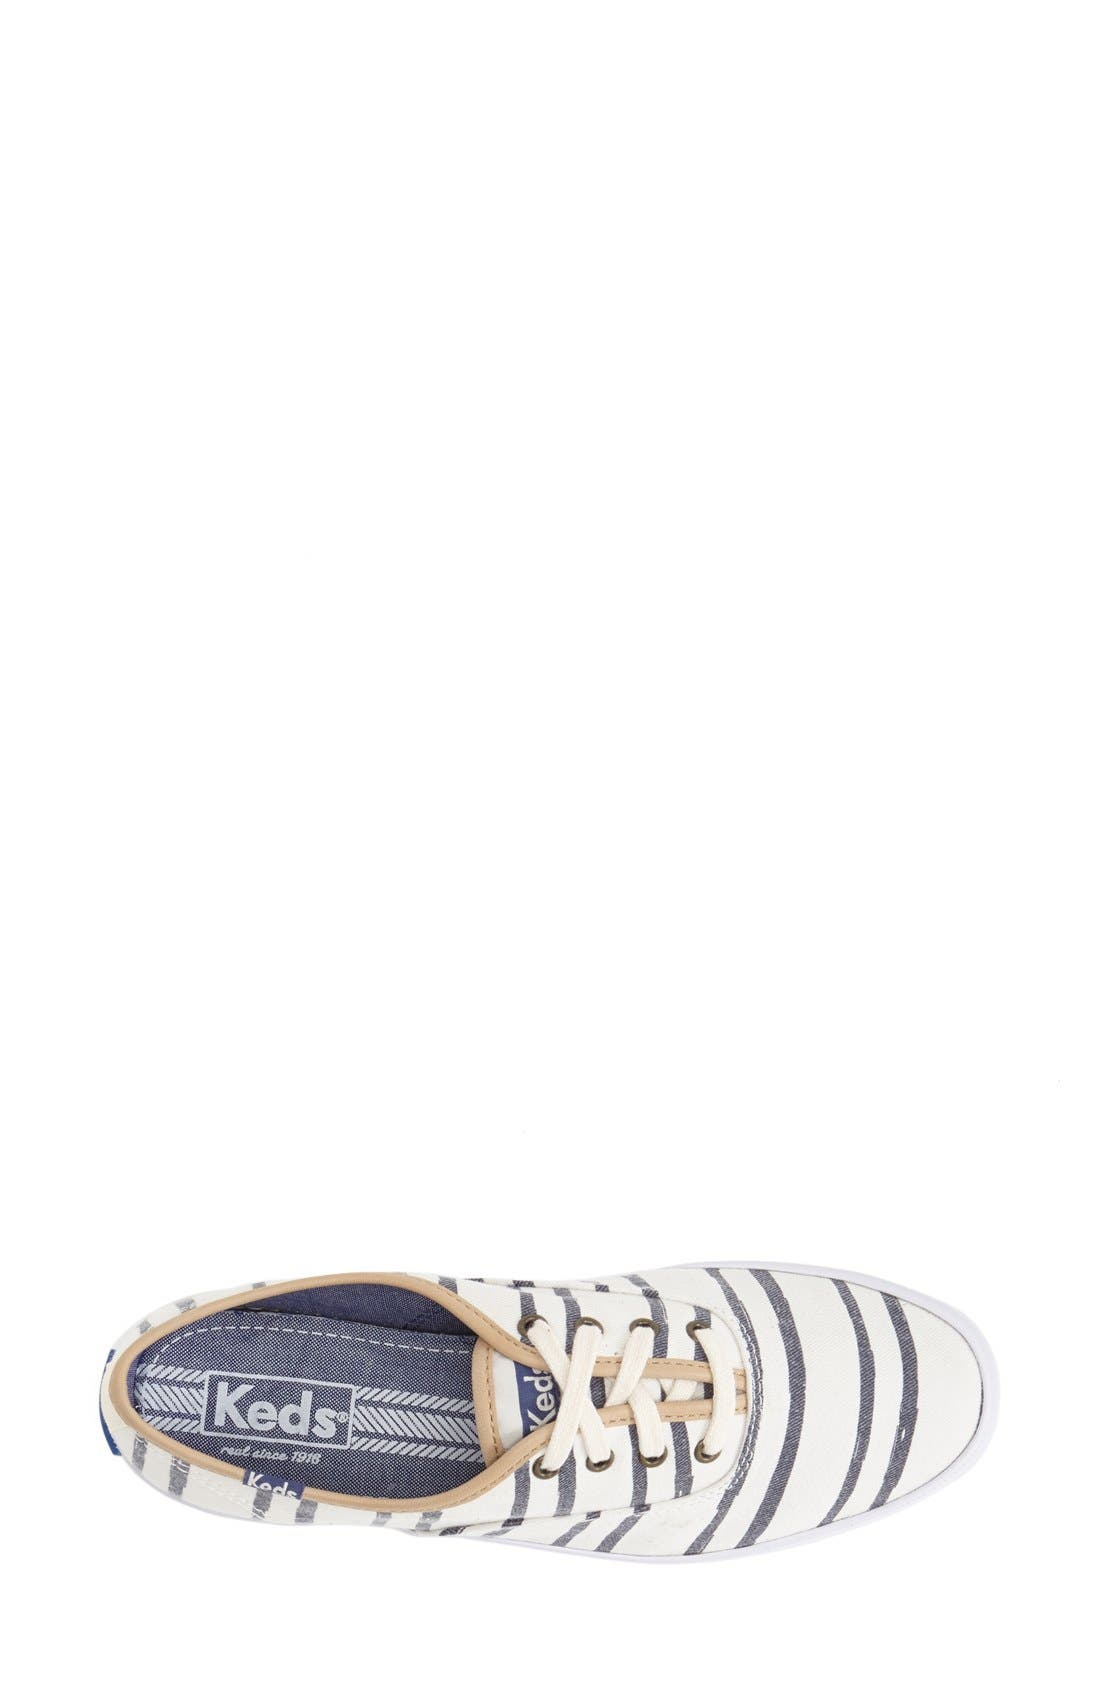 Alternate Image 3  - Keds® 'Champion - Washed Beach Stripe' Sneaker (Women)